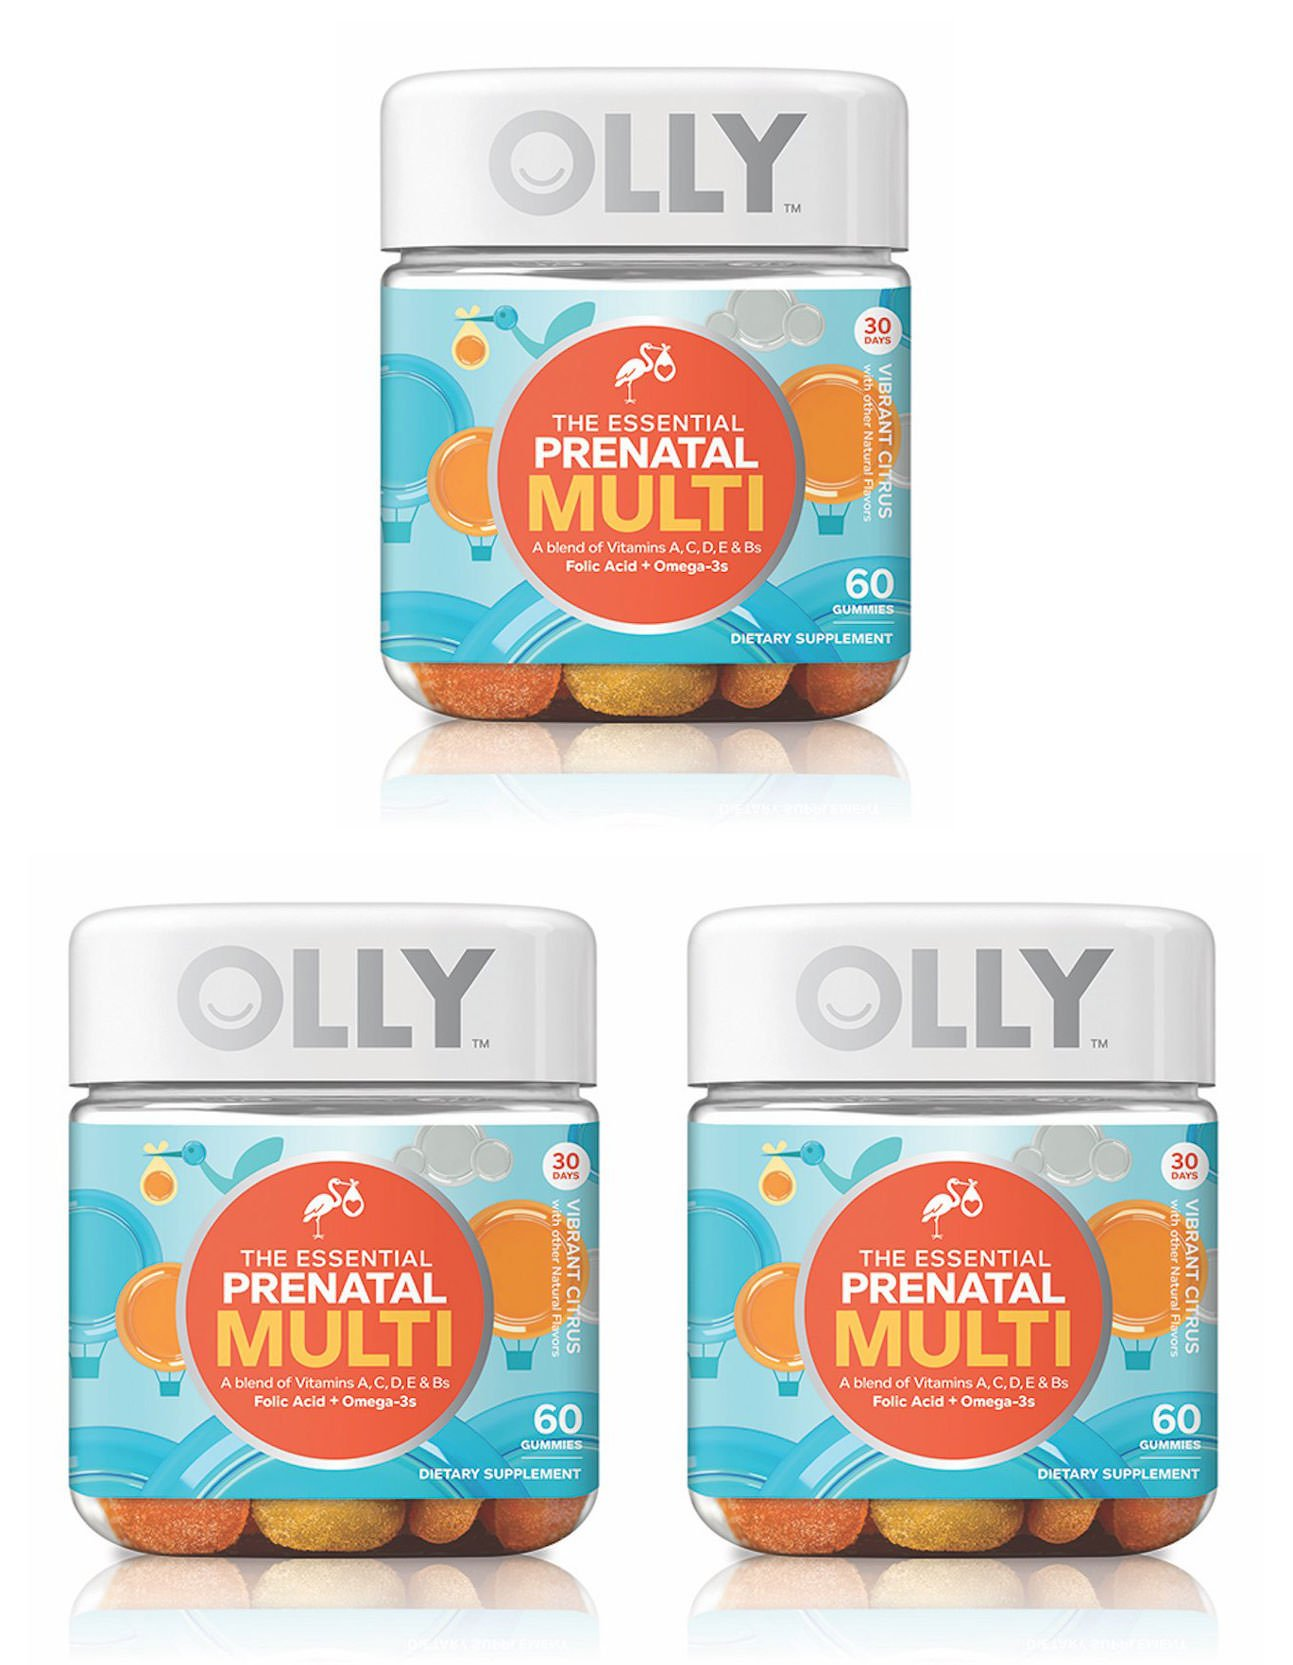 Olly Essential Prenatal Multivitamin Gummy Supplement, with FOLIC ACID + Omega-3s, Vibrant Citrus, 60 count, 3 Pack